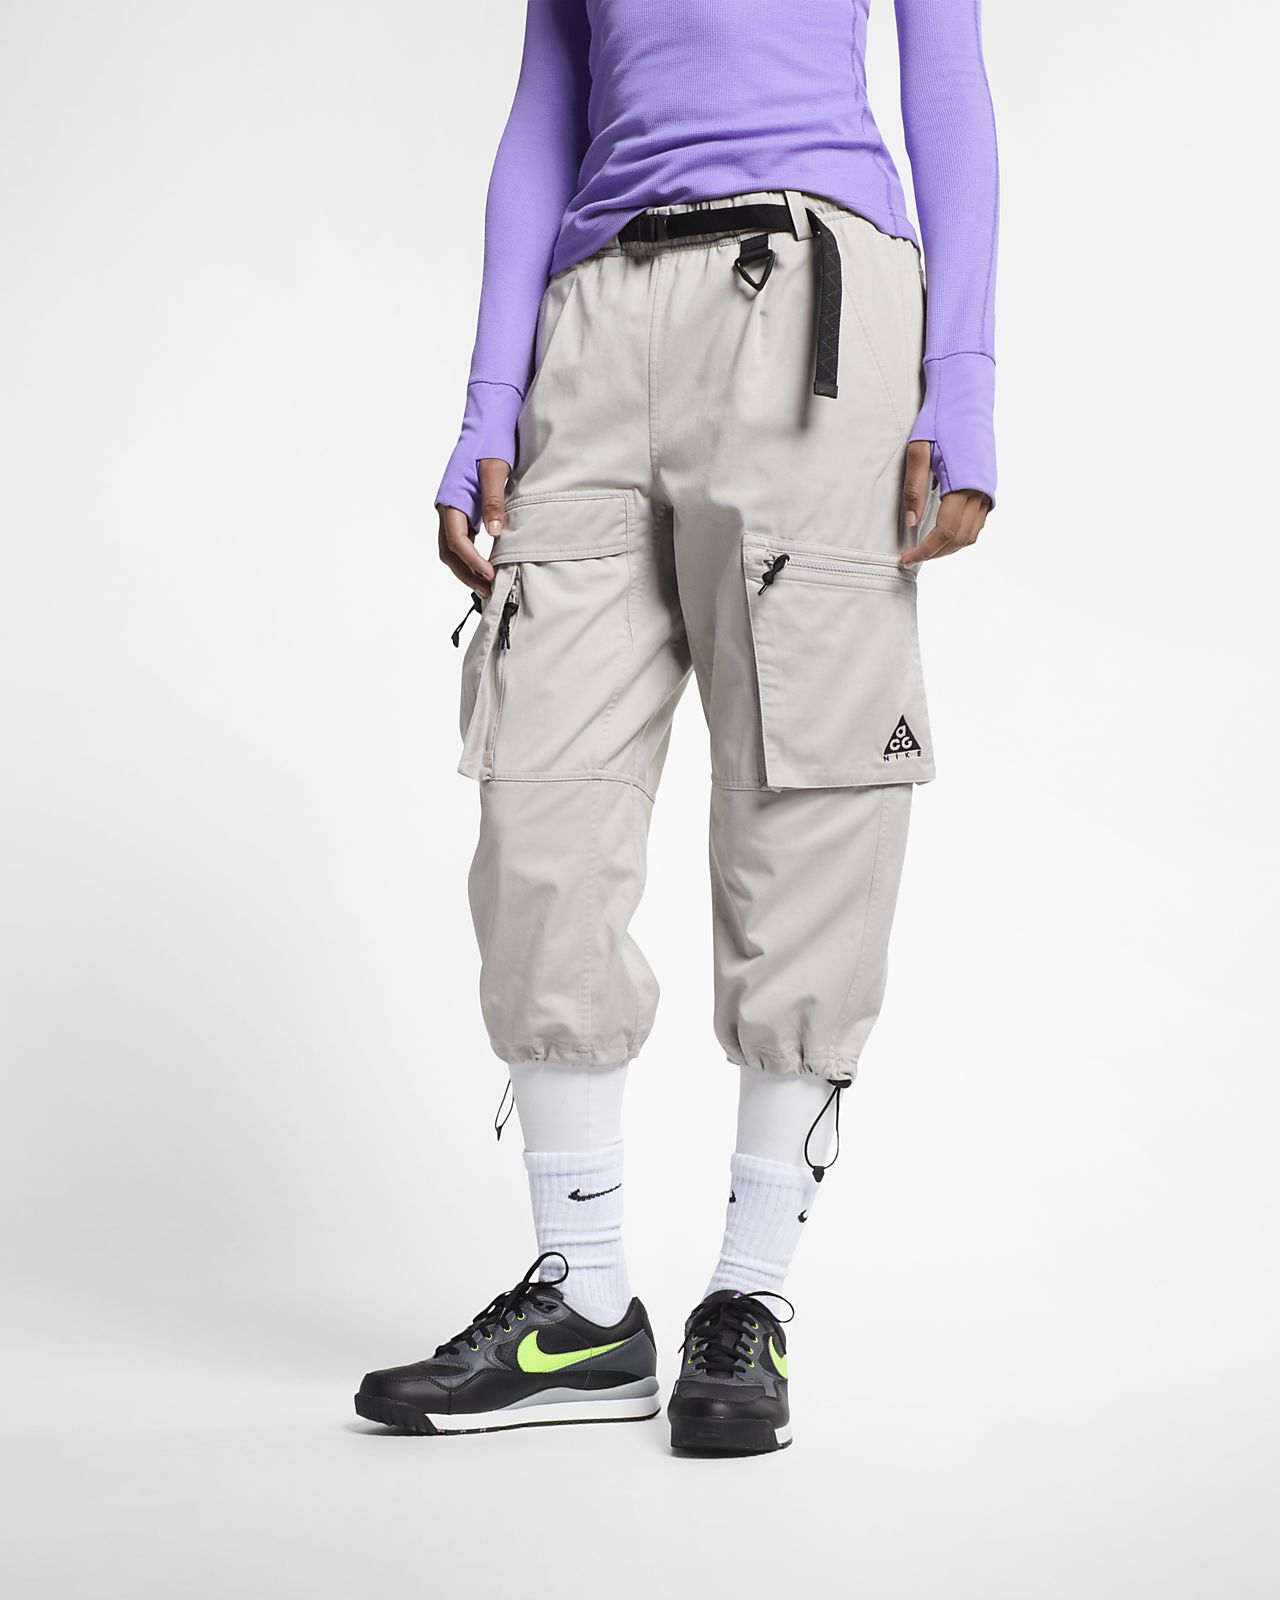 7da8c234ae Nike ACG Women's Trousers. Nike.com AT